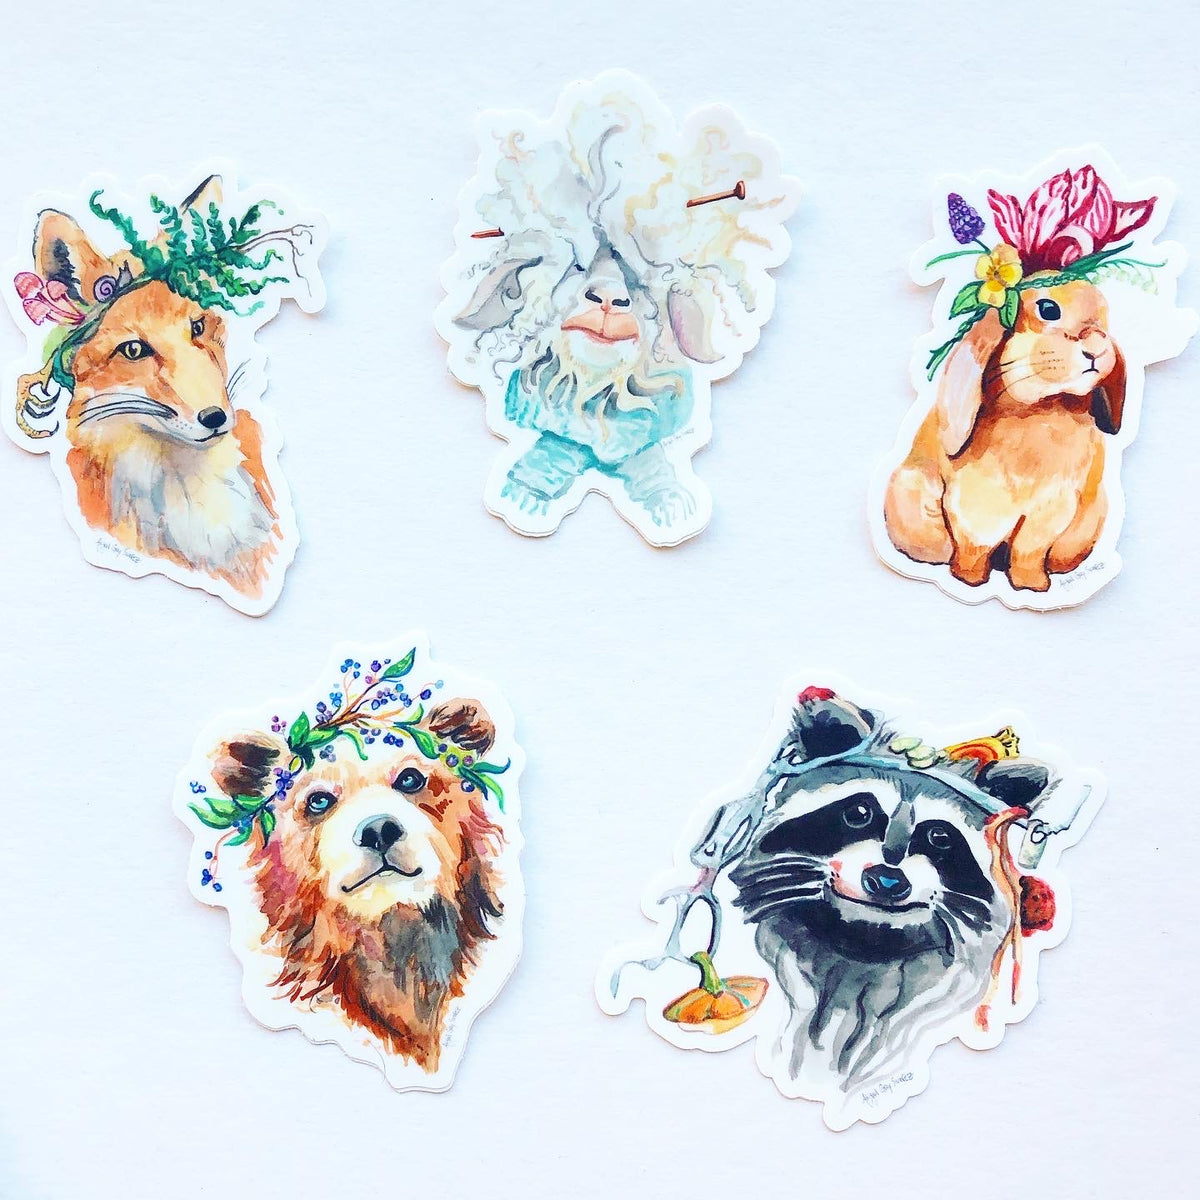 Bunny in flowers, portrait, animal STICKER, woodland creature- Stickers & Magnets